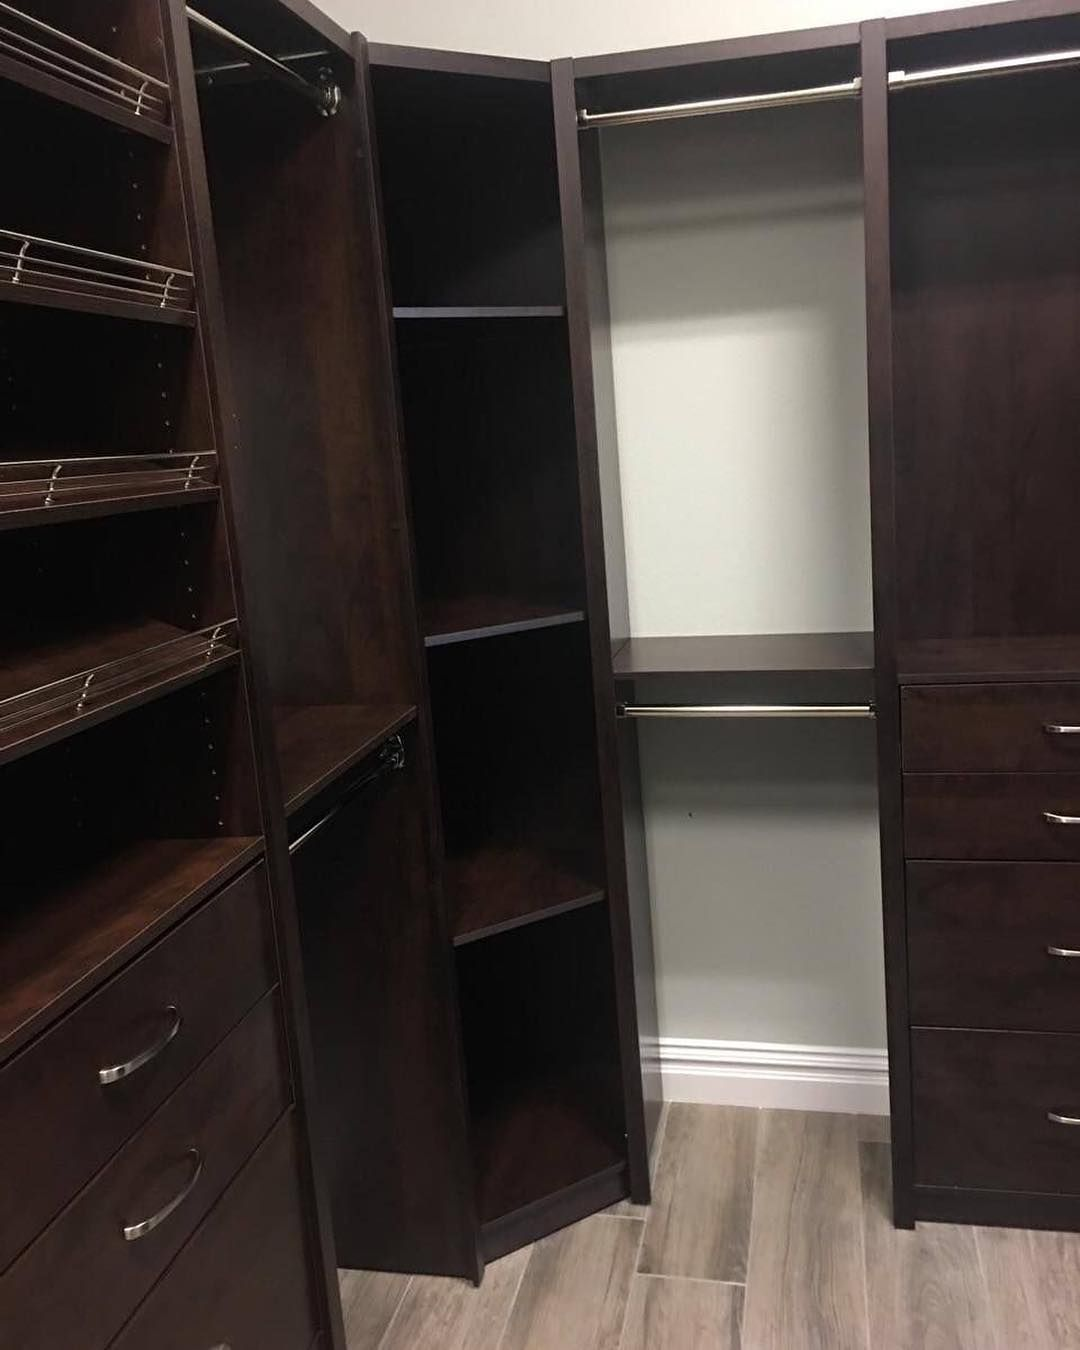 From Shoe Storage To Drawers A Corner Shelving Unit To Rods To Hang Clothes On And More This Custom Closet